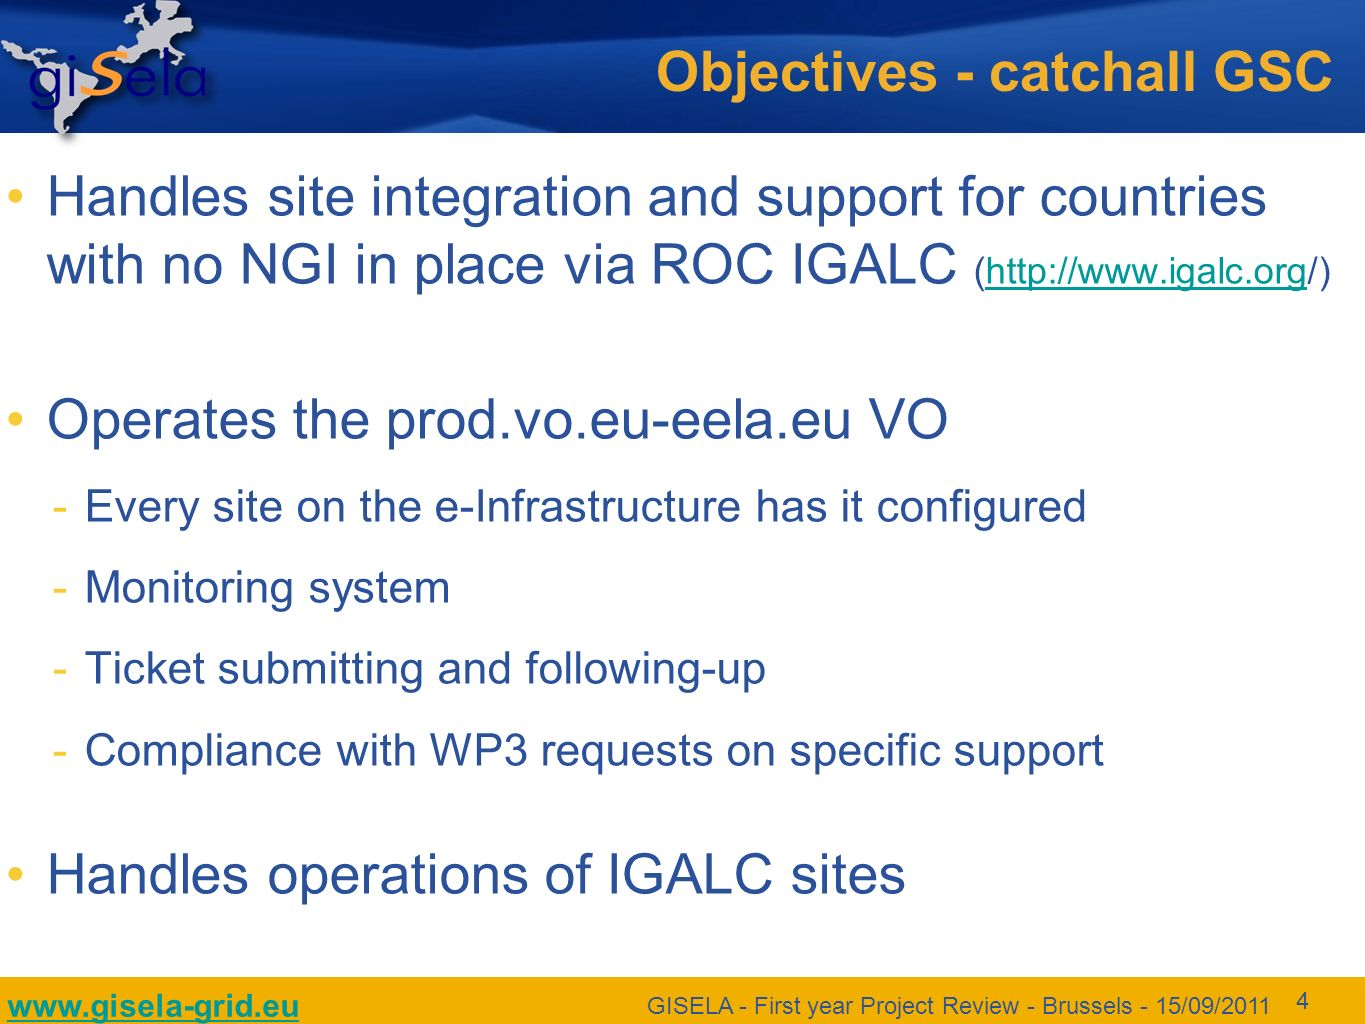 www.gisela-grid.eu GISELA - First year Project Review - Brussels - 15/09/2011 4 Objectives - catchall GSC Handles site integration and support for countries with no NGI in place via ROC IGALC (http://www.igalc.org/)http://www.igalc.org Operates the prod.vo.eu-eela.eu VO Every site on the e-Infrastructure has it configured Monitoring system Ticket submitting and following-up Compliance with WP3 requests on specific support Handles operations of IGALC sites